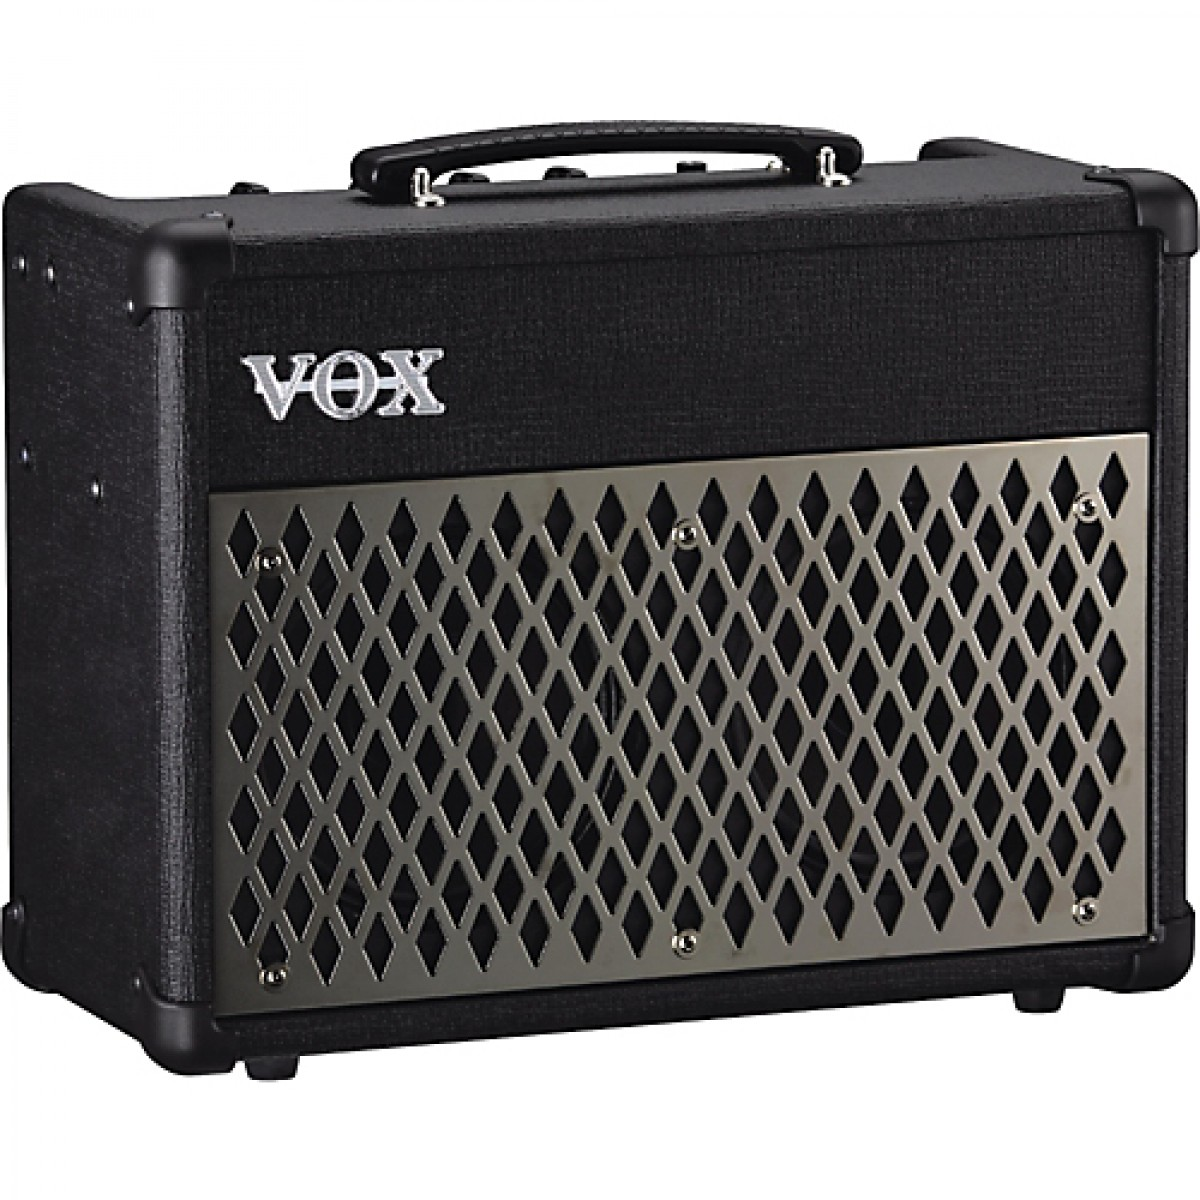 vox da10 buy guitar combo amp best price. Black Bedroom Furniture Sets. Home Design Ideas